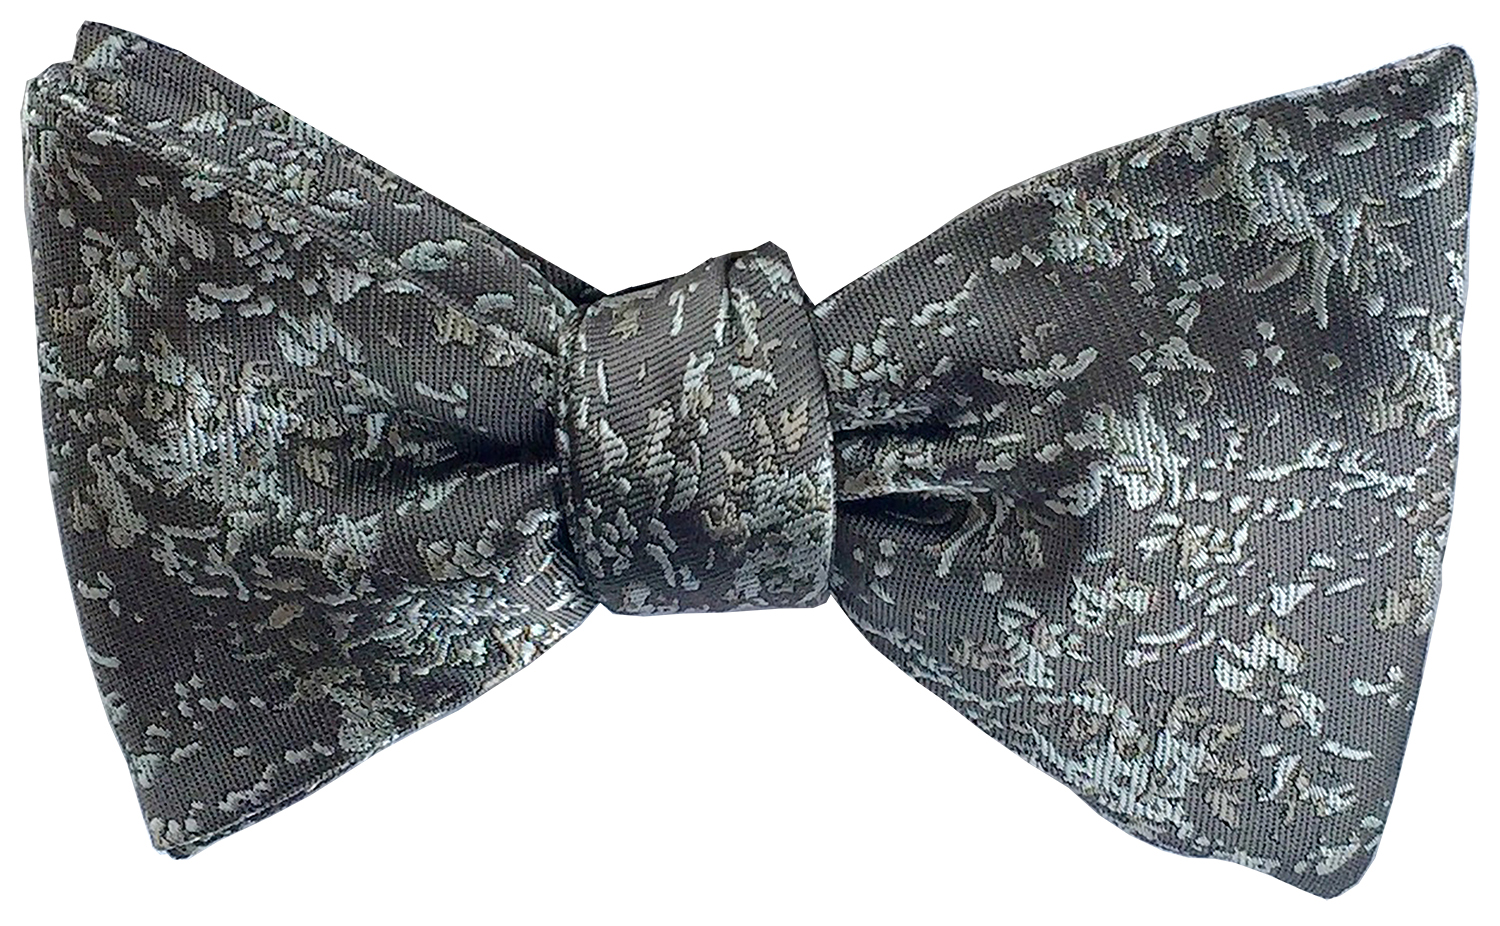 doppeldecker design designer aviation airplane aircraft silk bow tie bowtie arctic drift